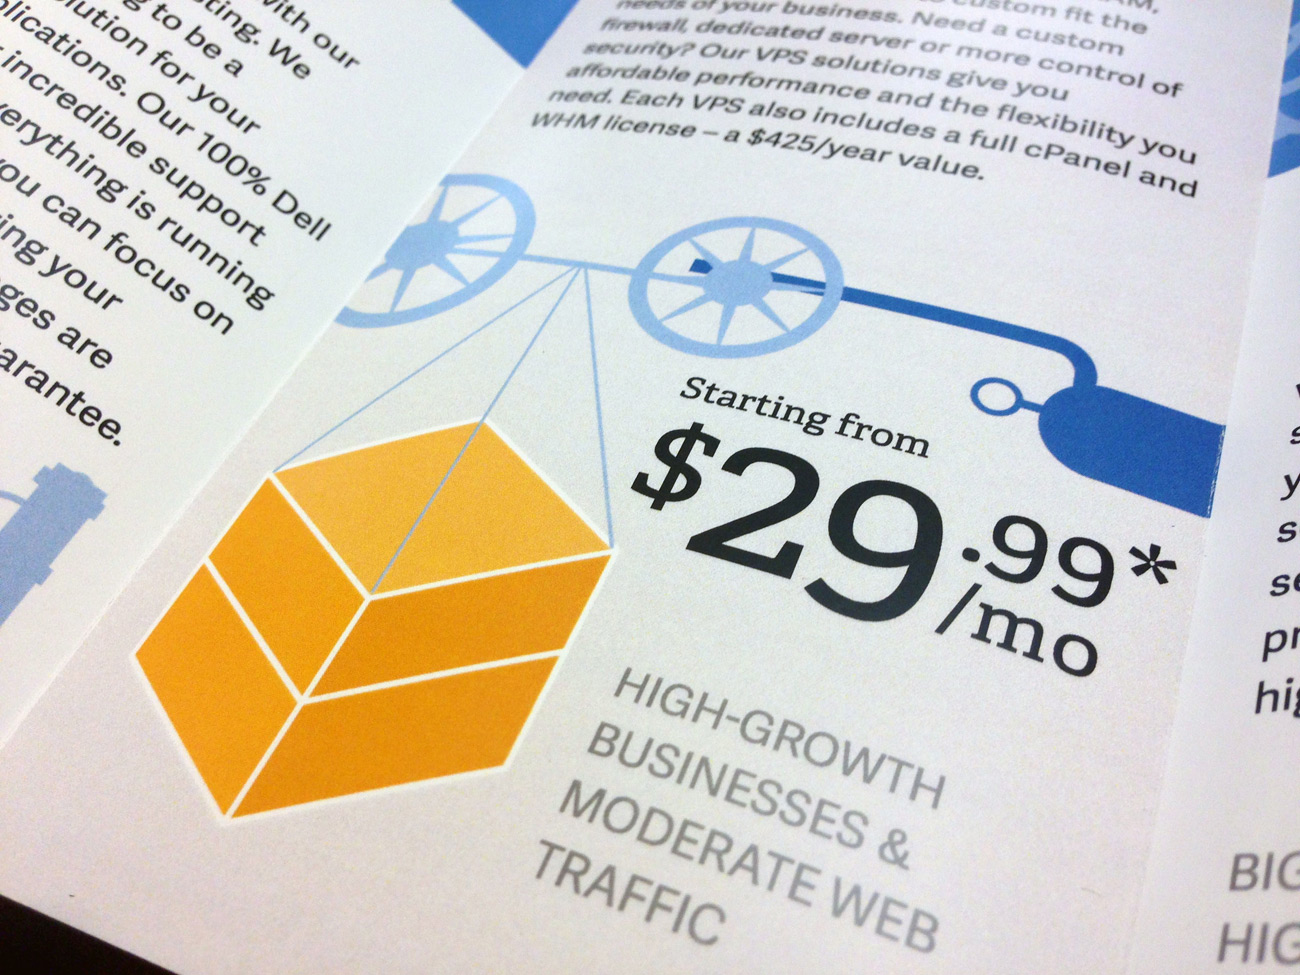 inmotion-hosting-brochure-closeup2